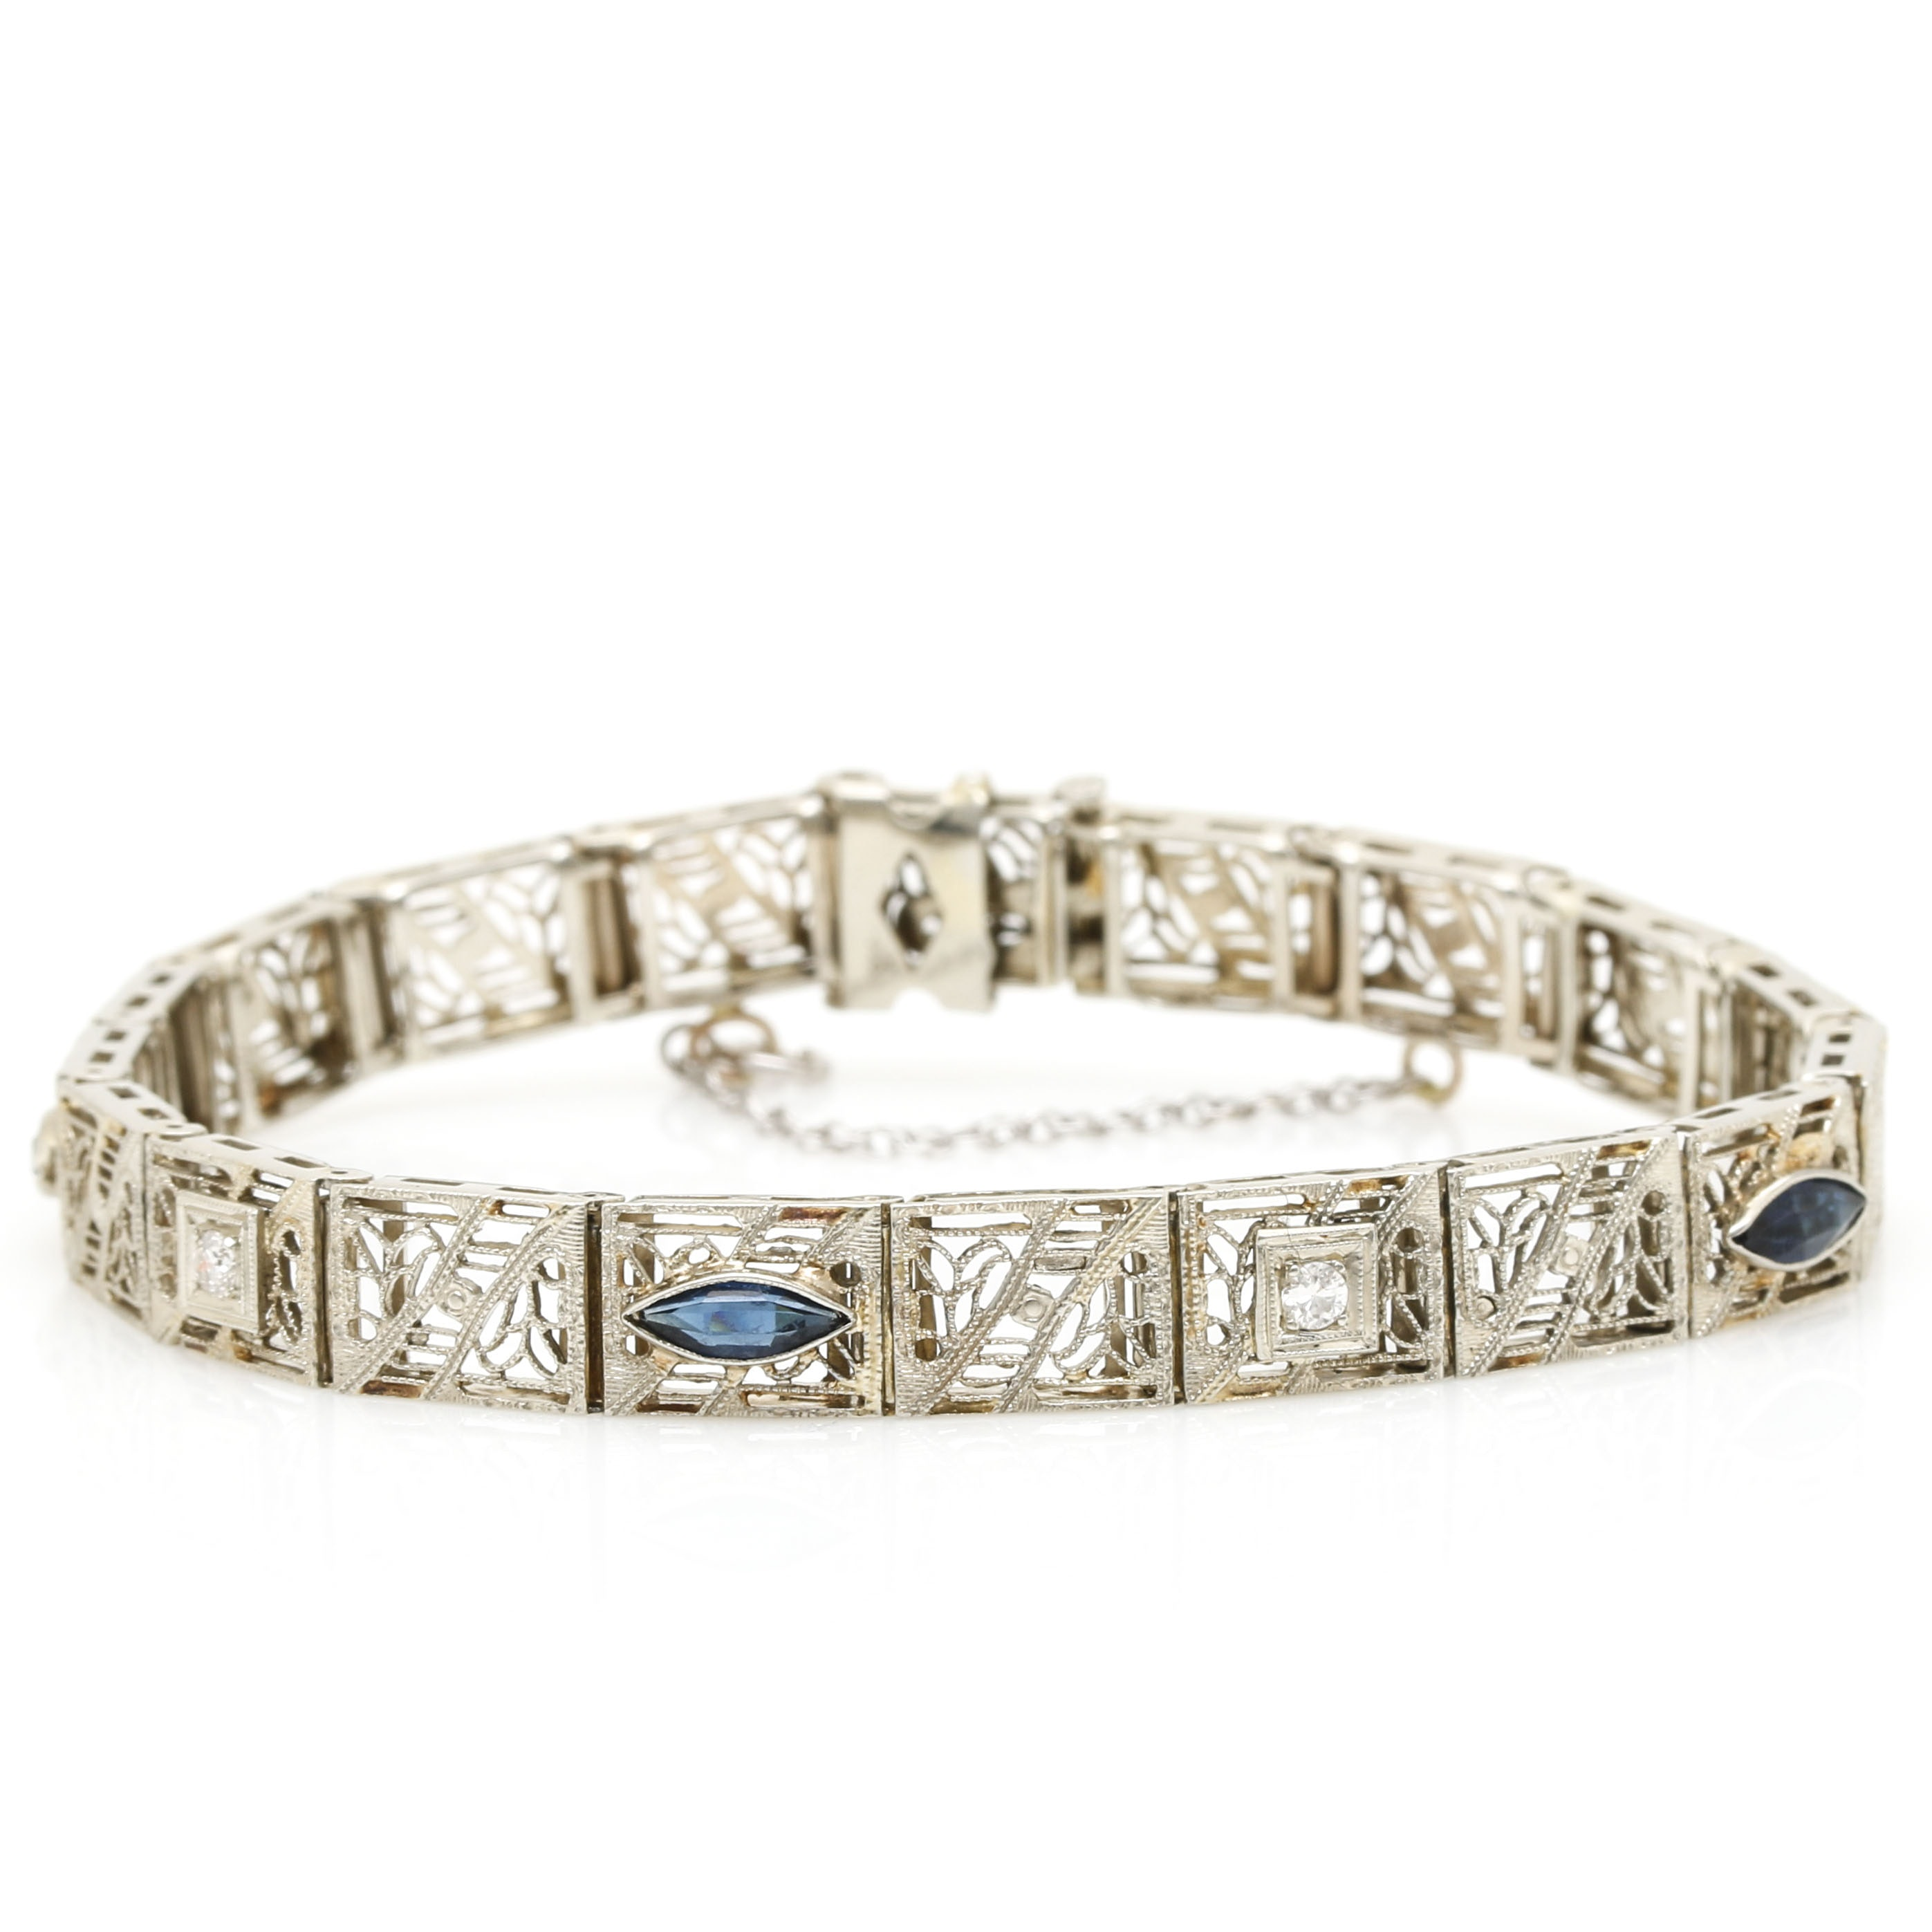 14K White Gold Diamonds and Glass Accents Bracelet